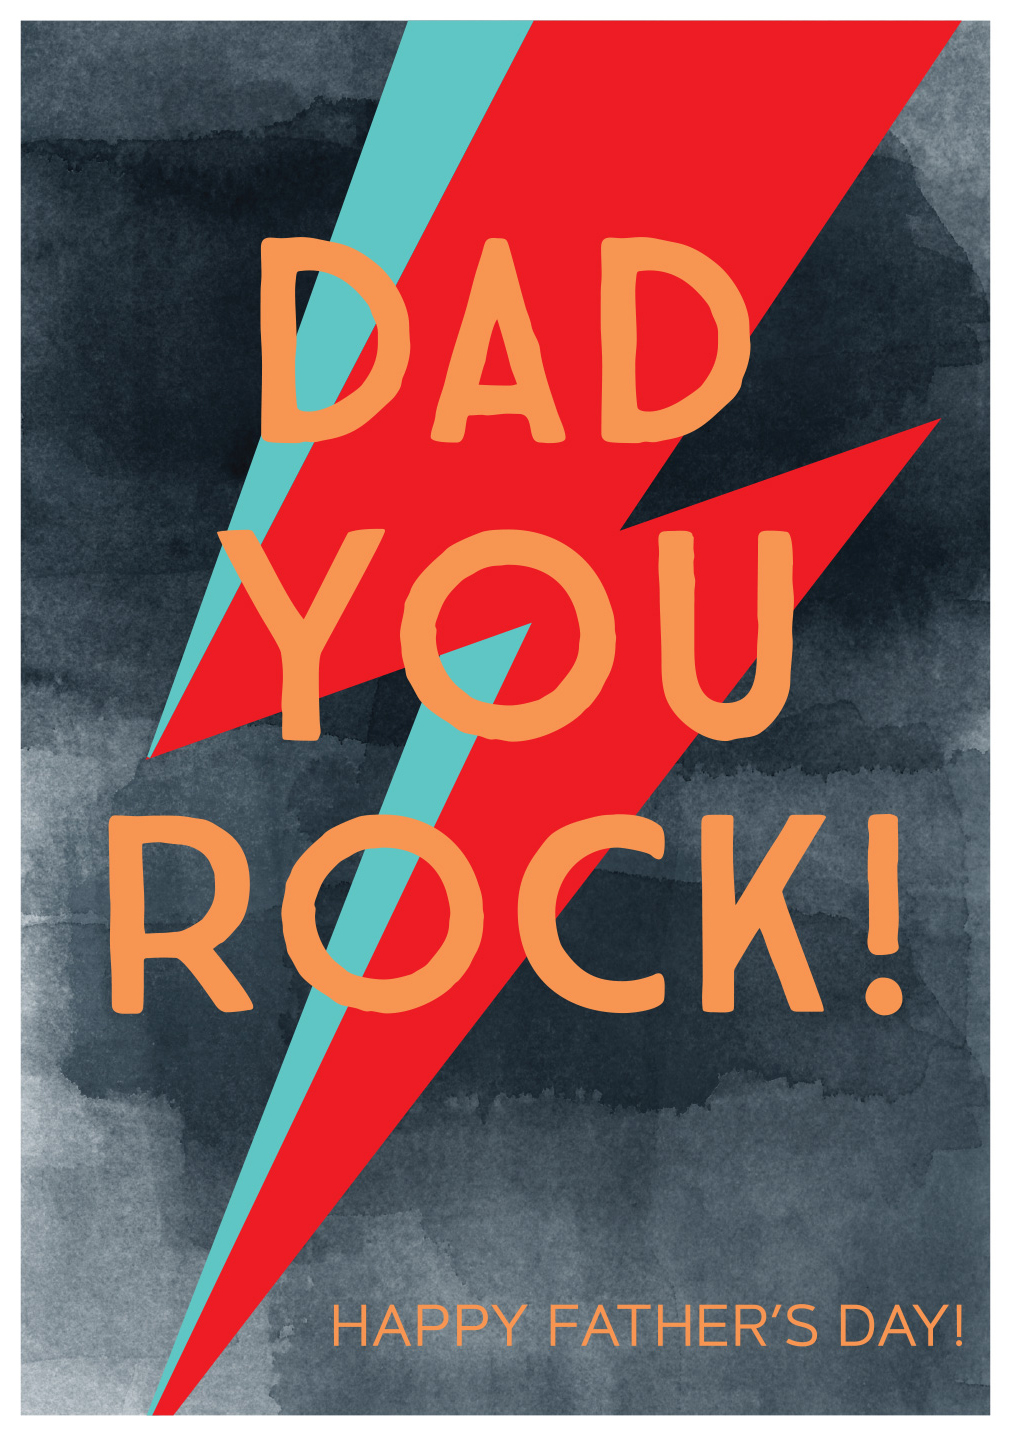 You Rock Father's Day Card